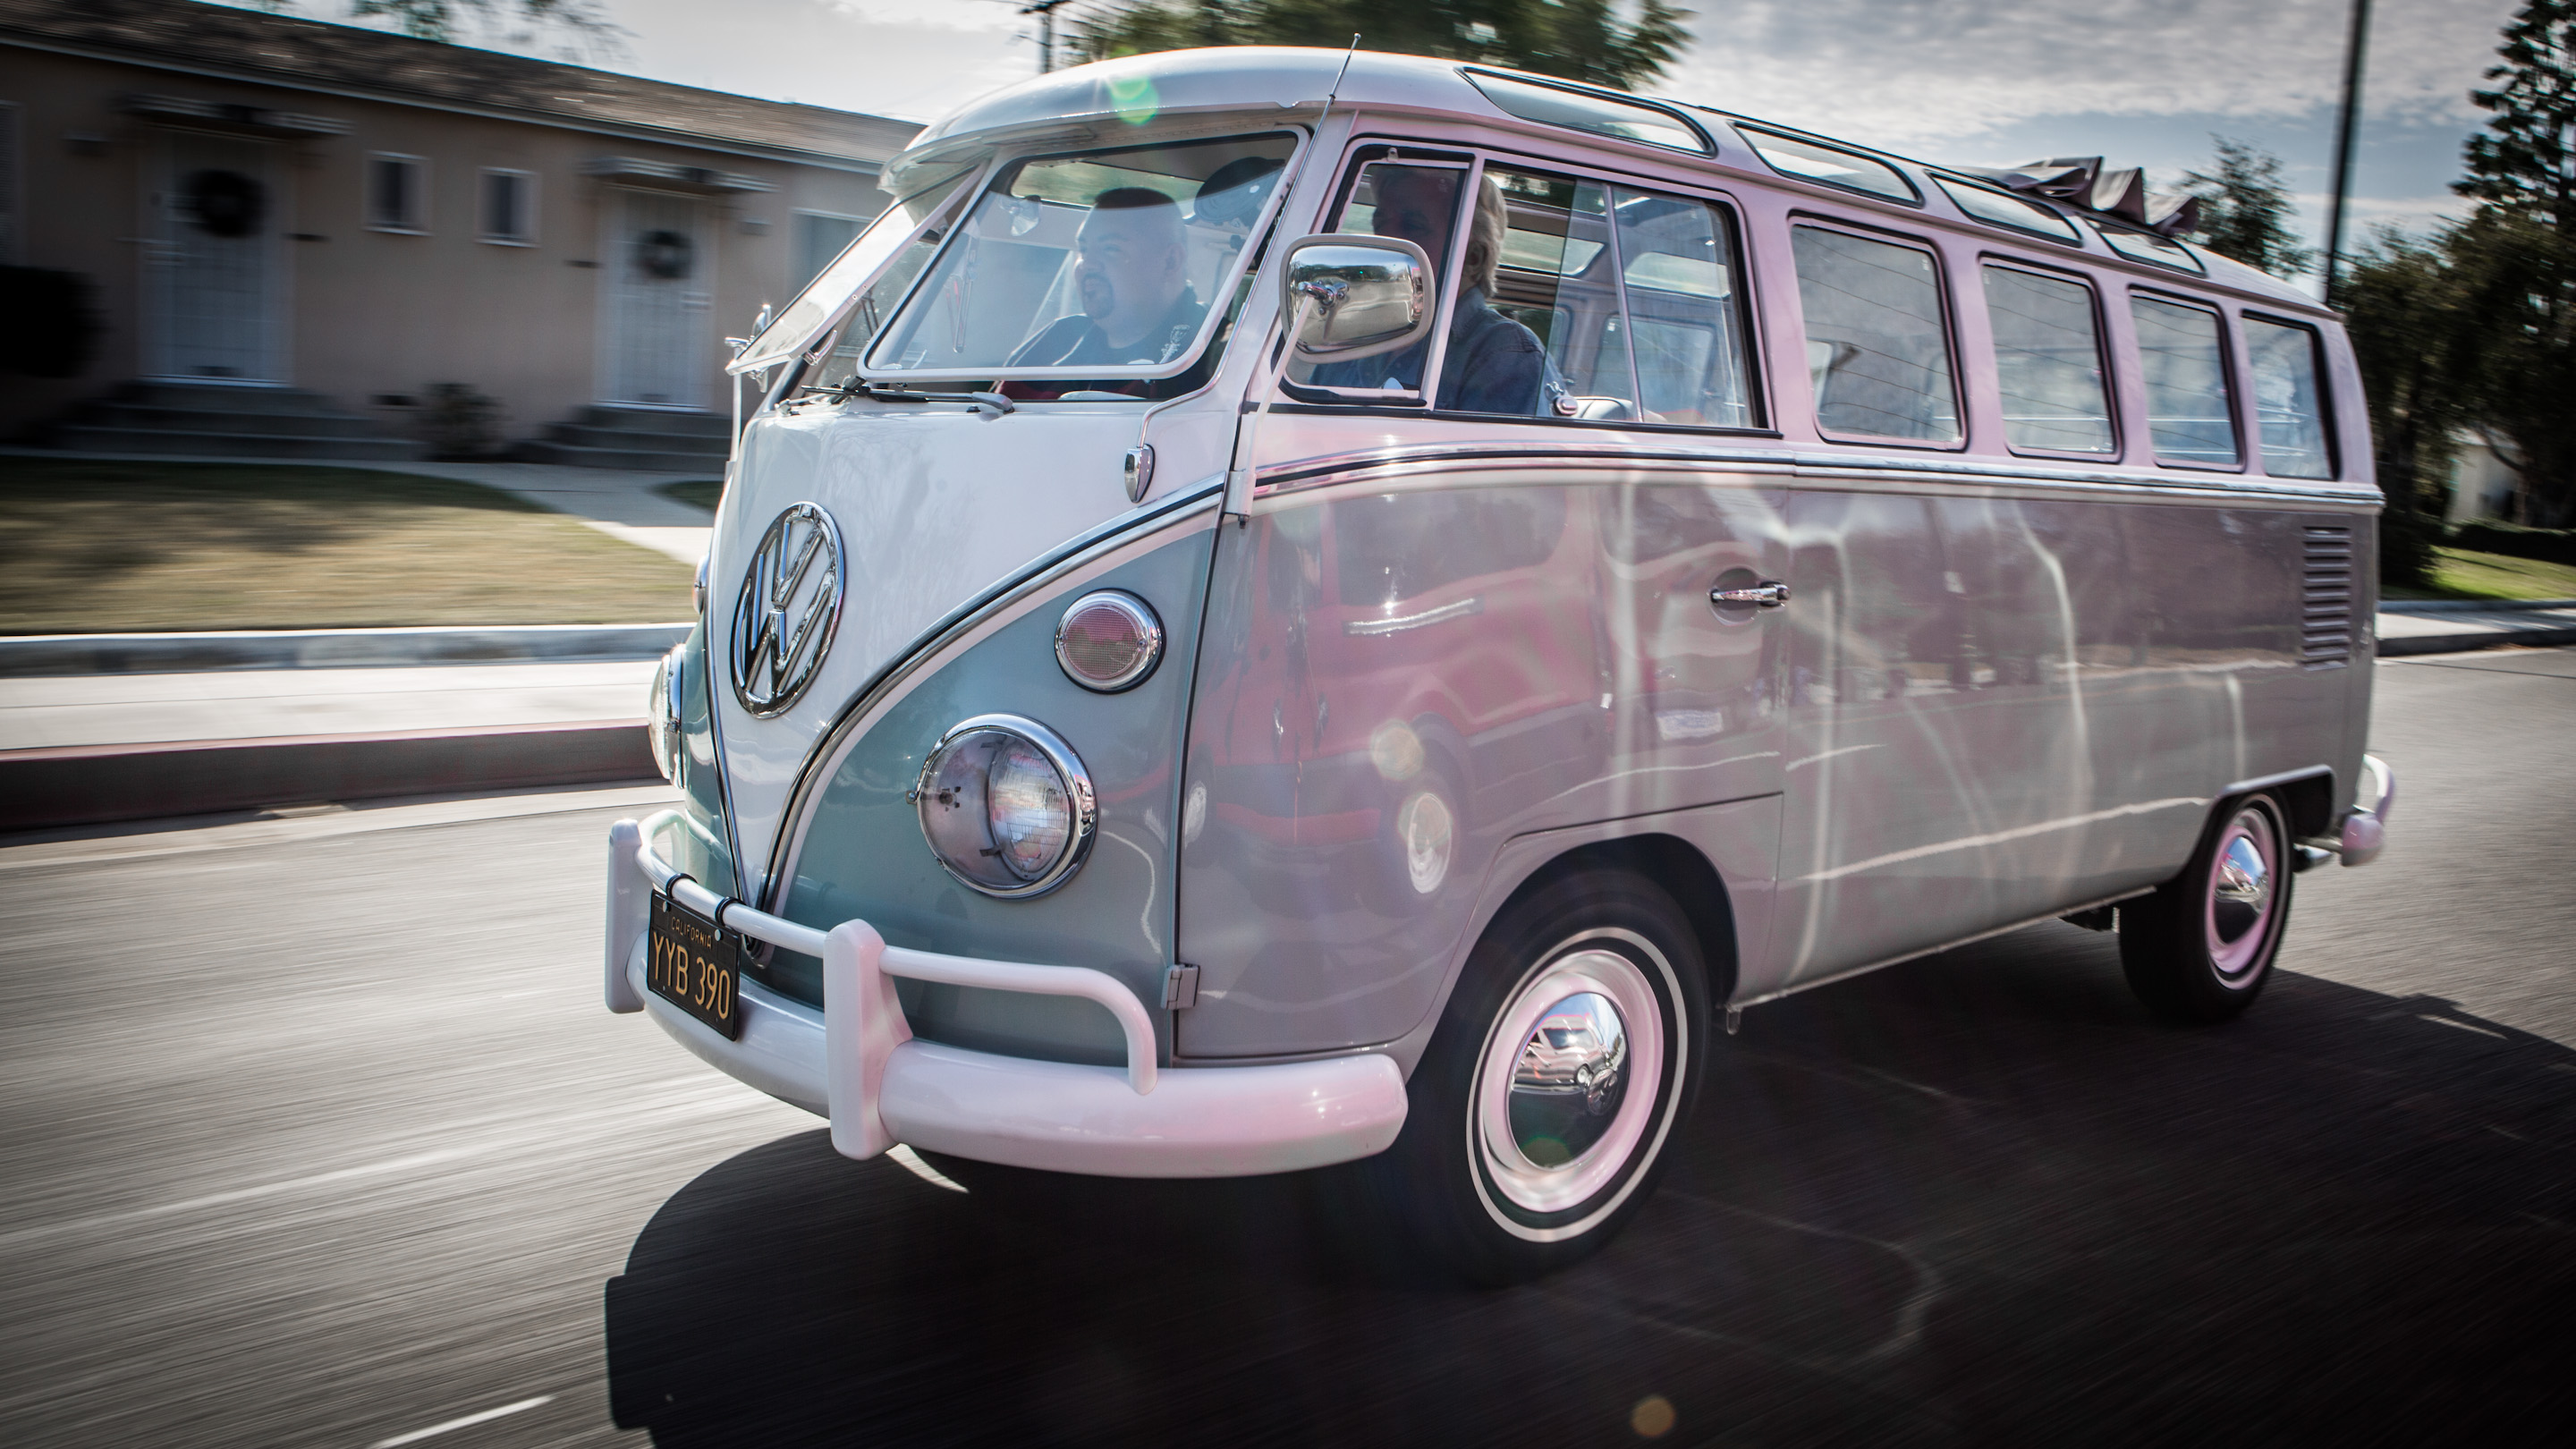 Awesome Video Of A Killer 1966 Volkswagen Samba Bus